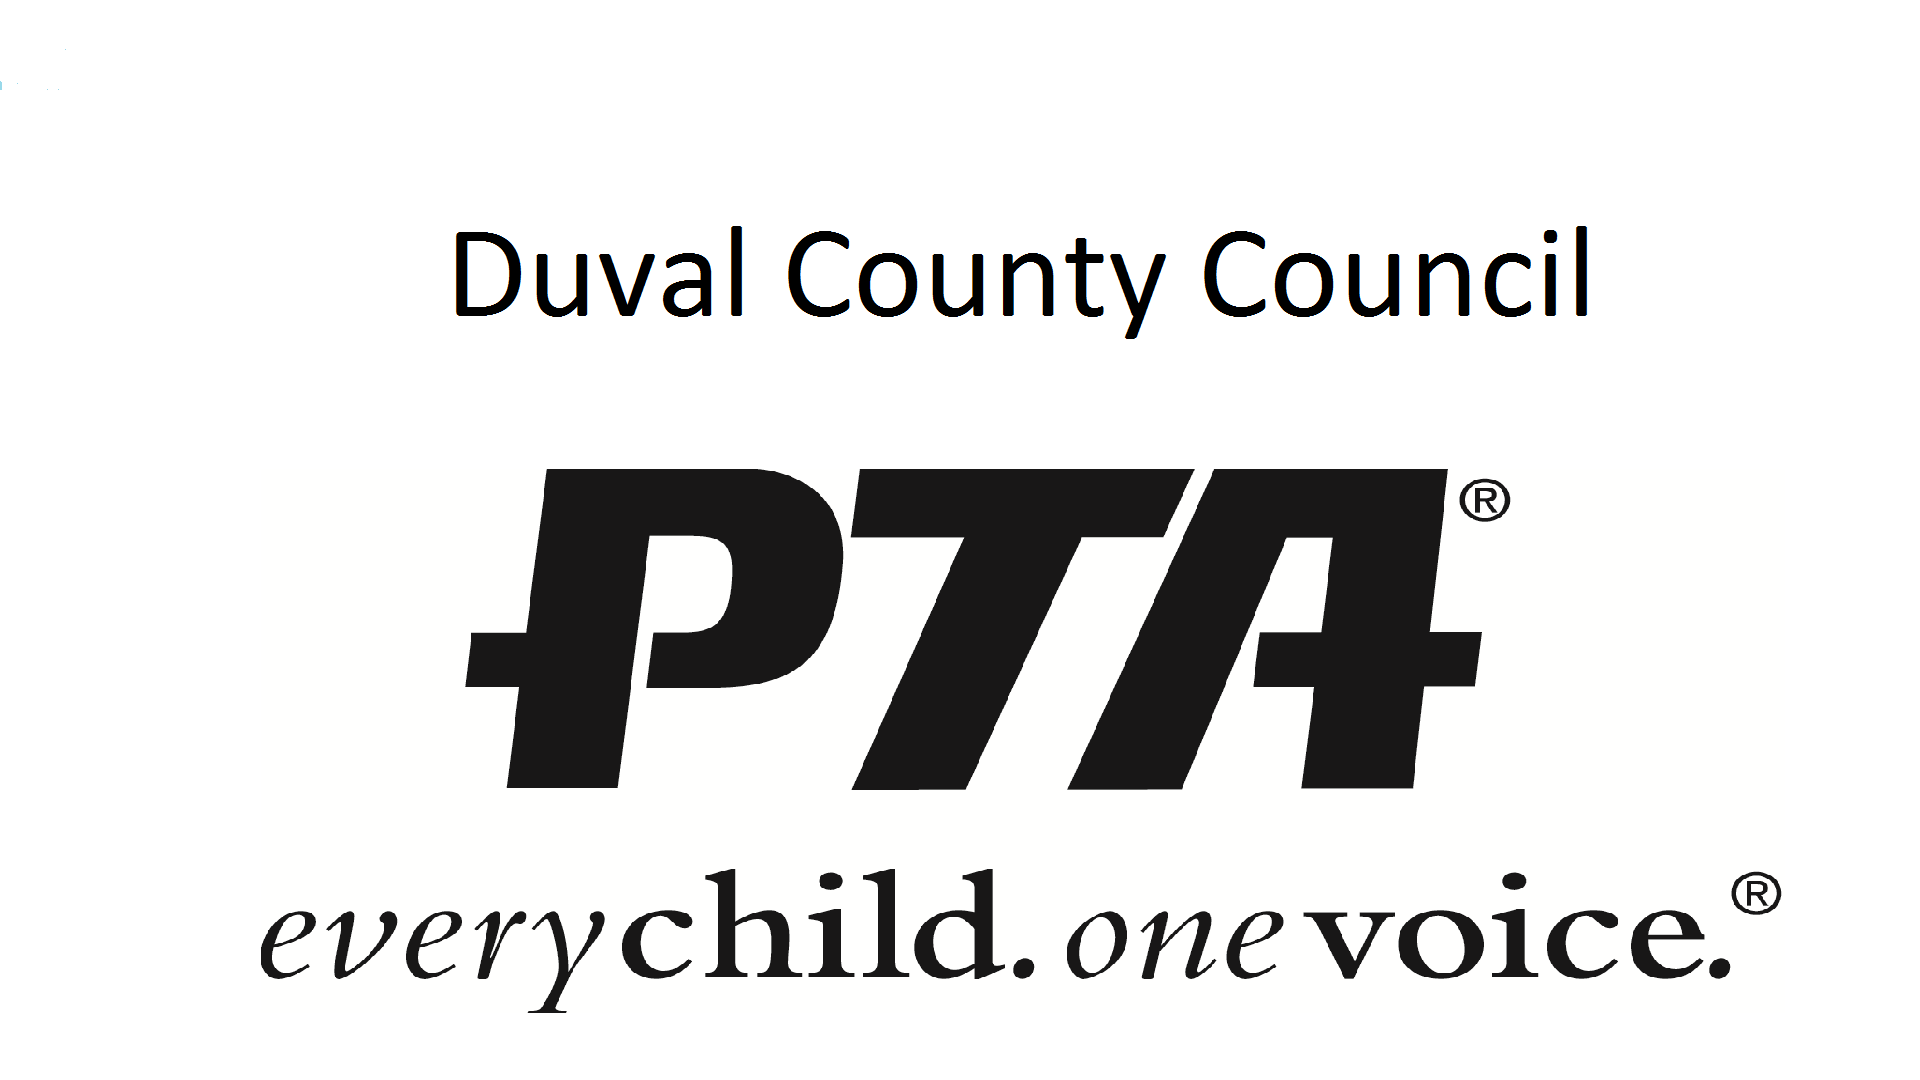 forms duval county council of ptas